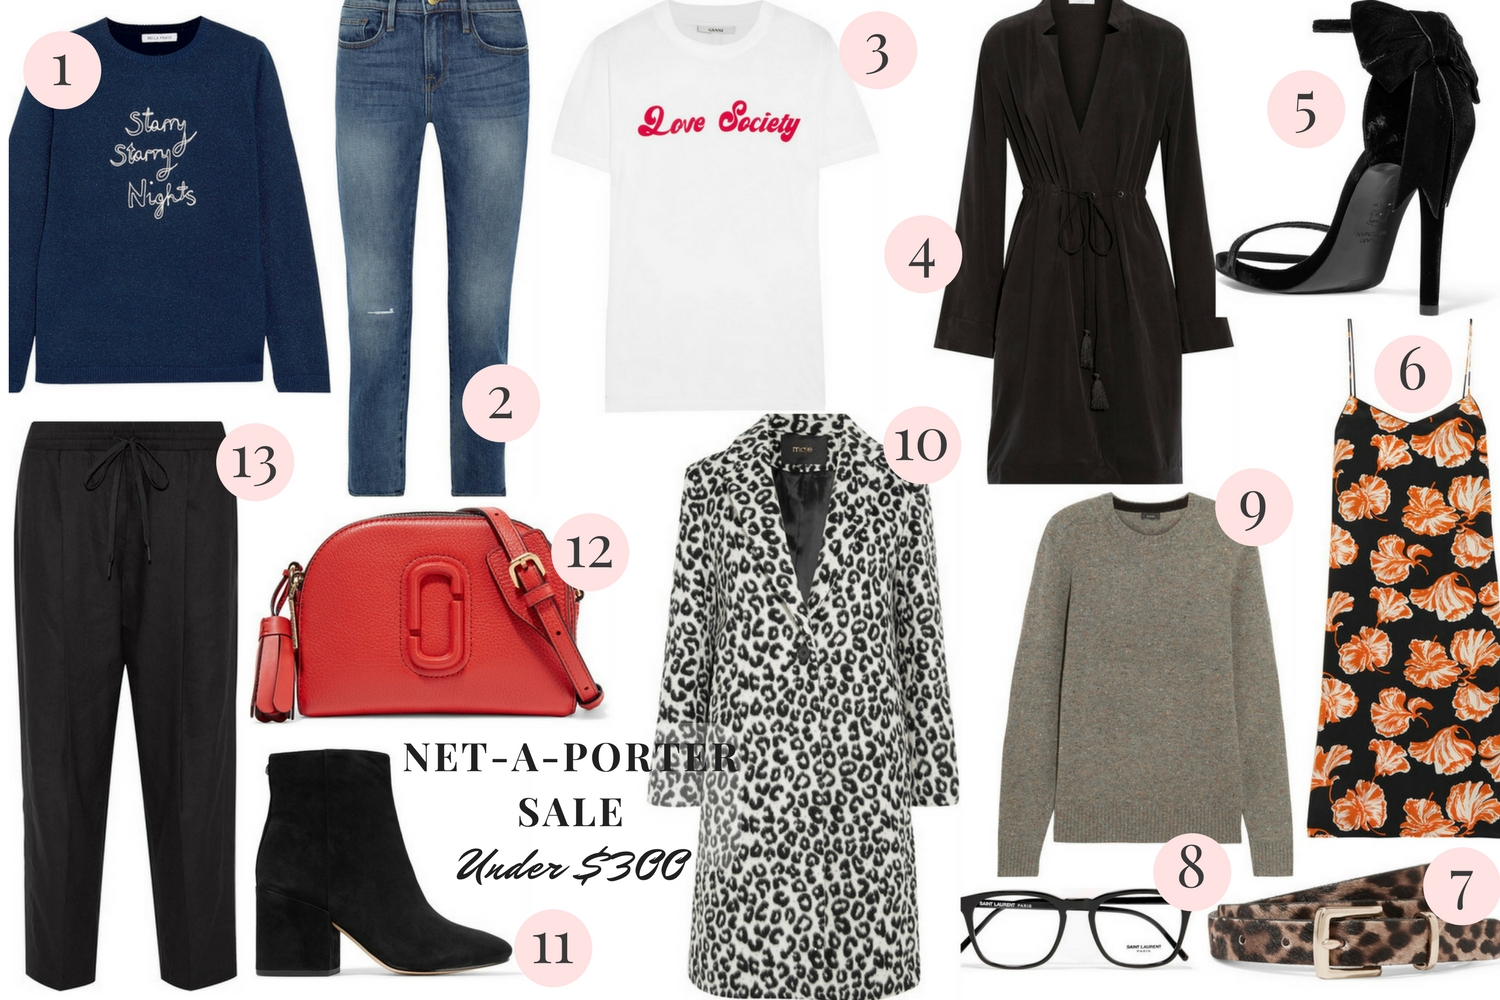 The Net-a-Porter Sale Edit (Under $300)